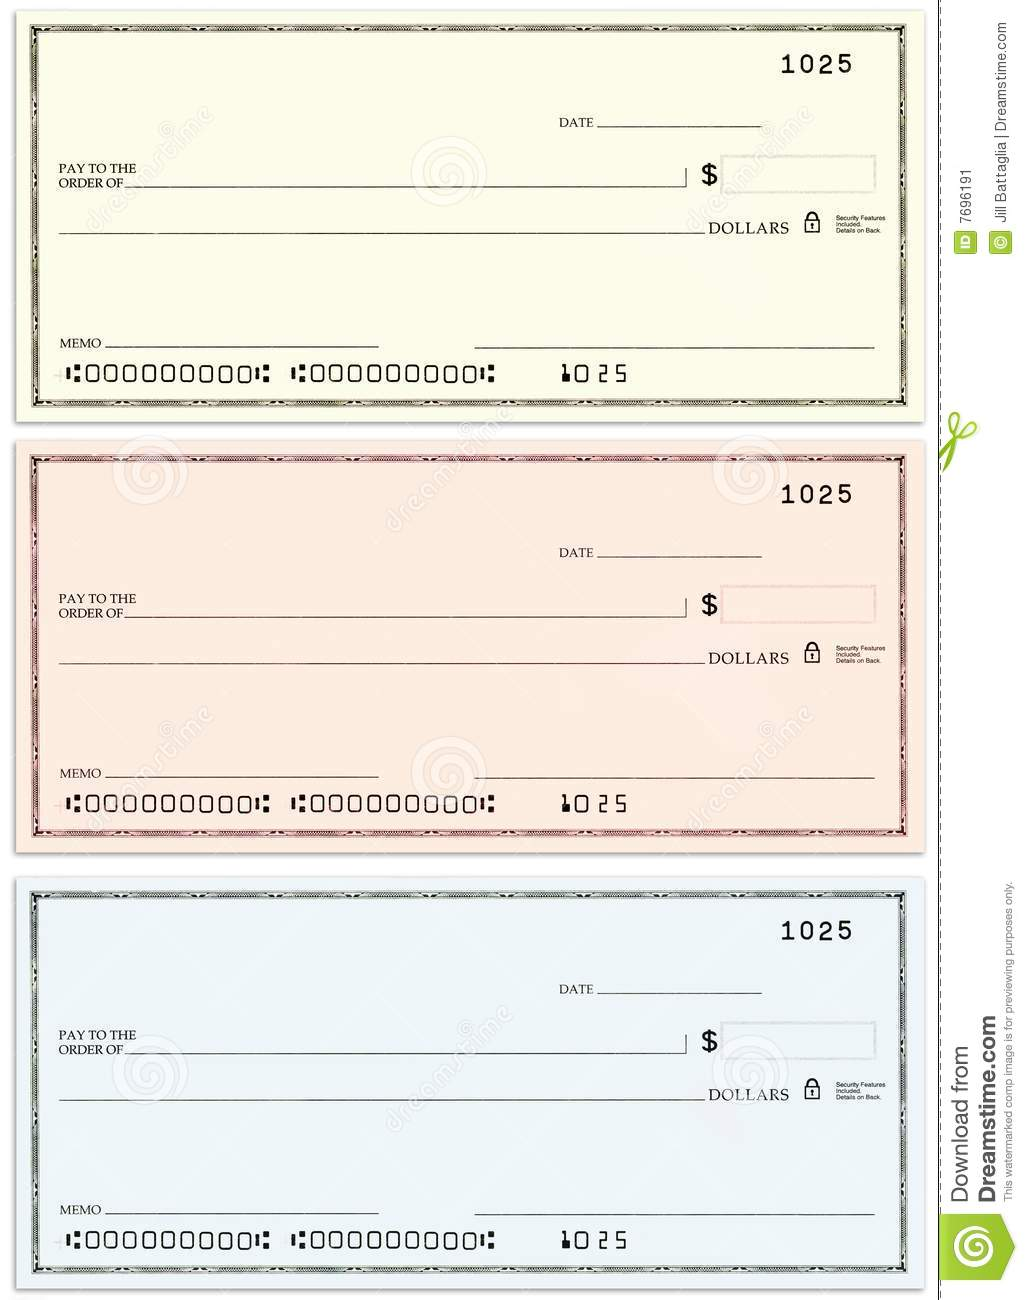 It is a picture of Printable Checks for Kids intended for teaching